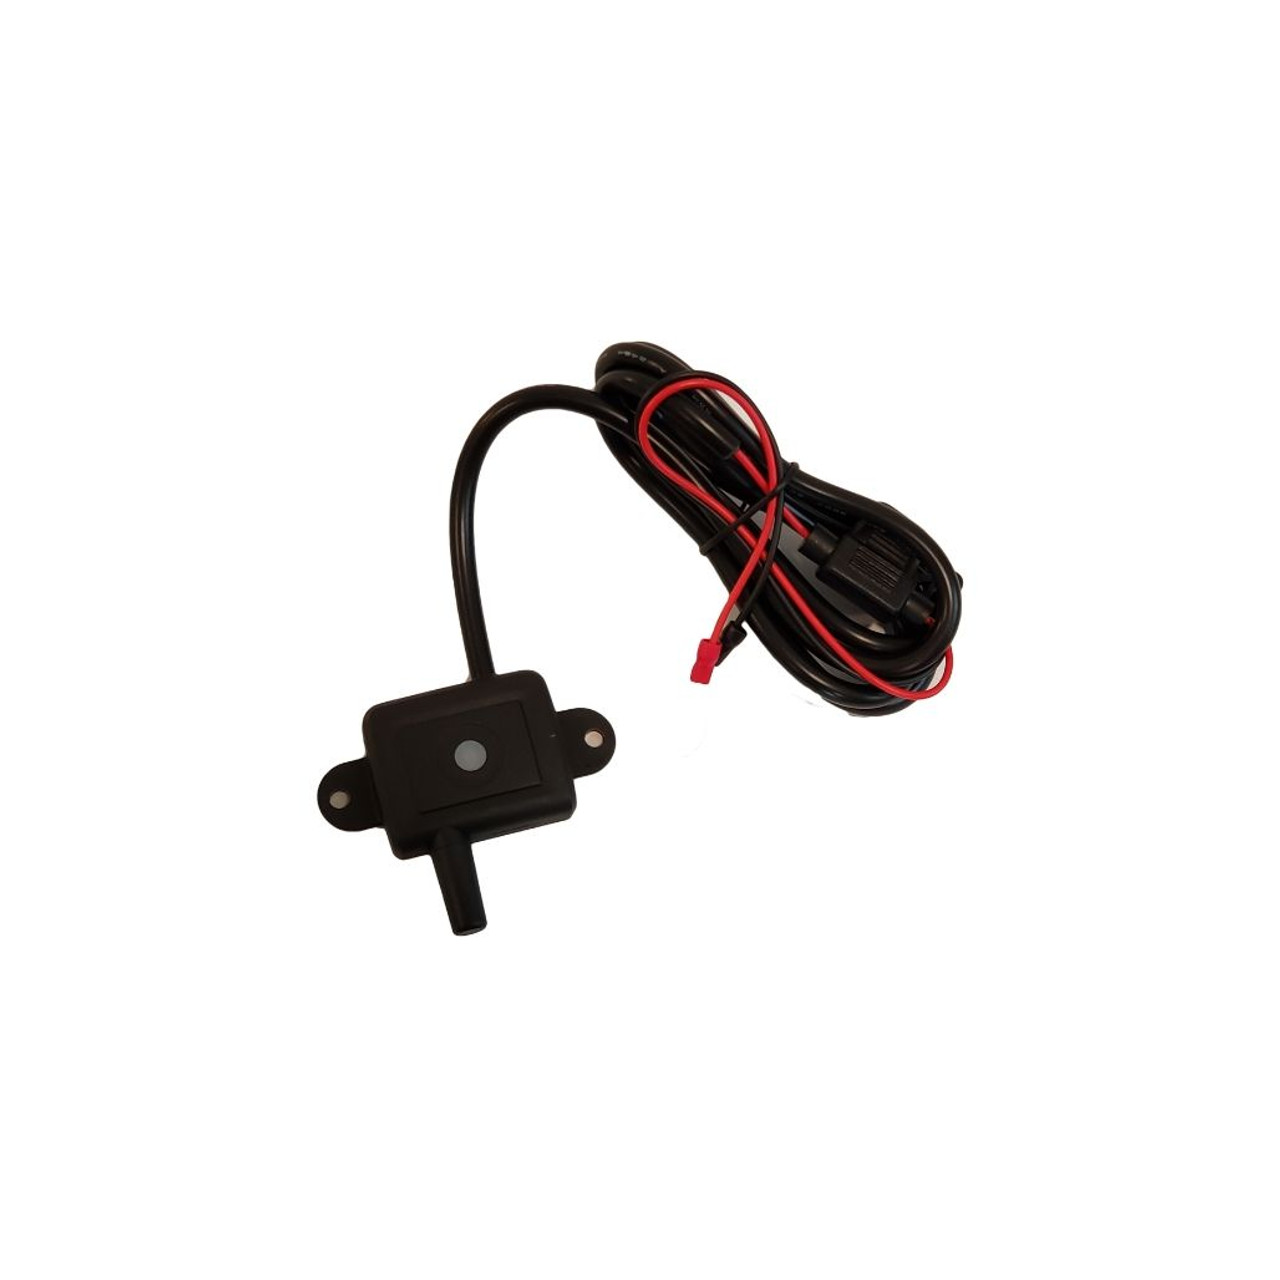 TST 507 TPMS with CAP Sensors (06) and Repeater